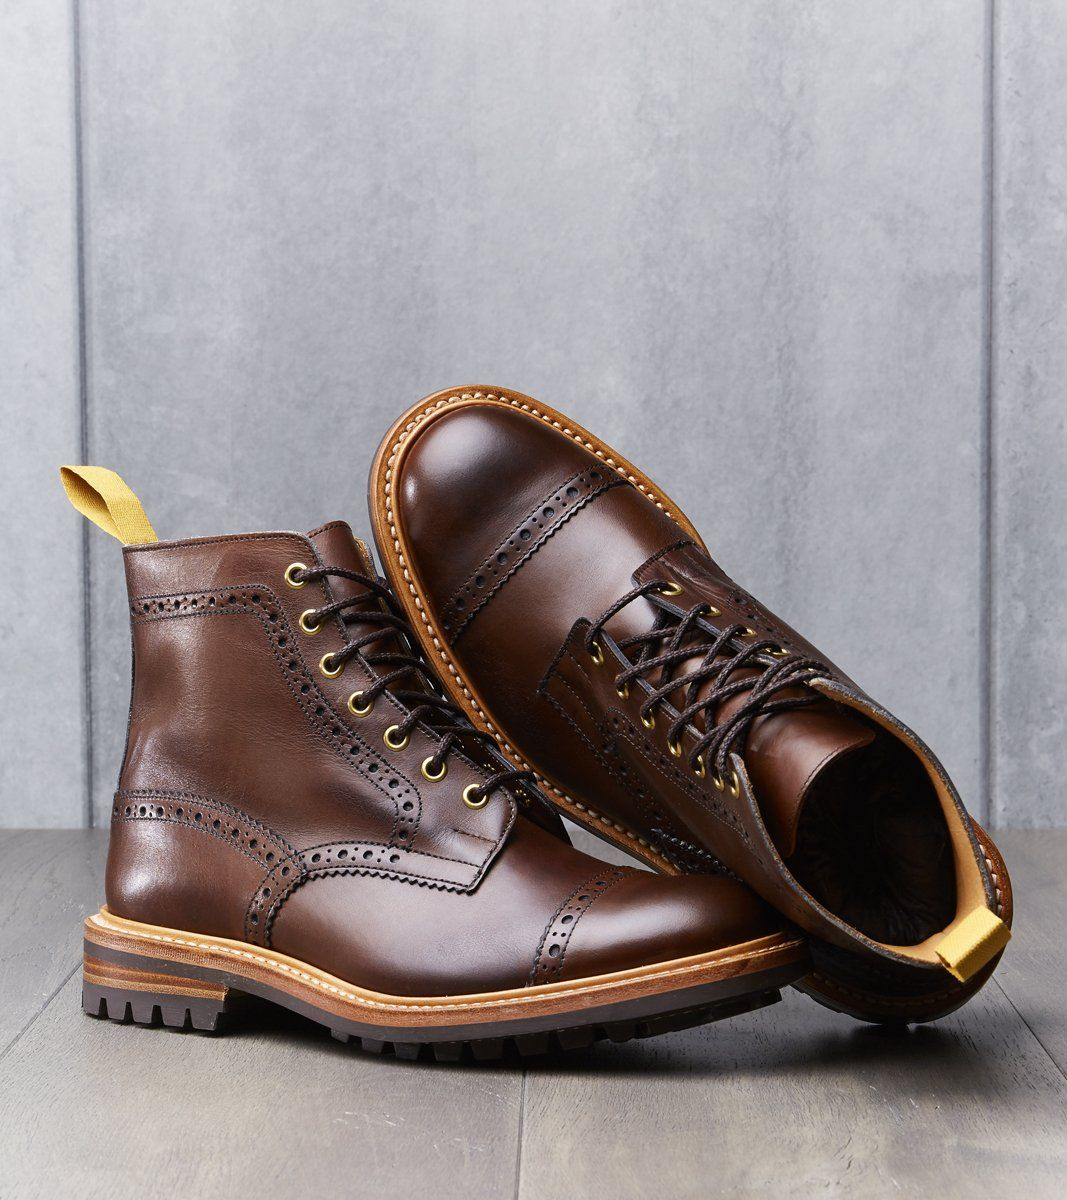 b80a2d57ed4 Eaton Boot - Commando - Coffee Burnished in 2019 | Boots | Brown ...